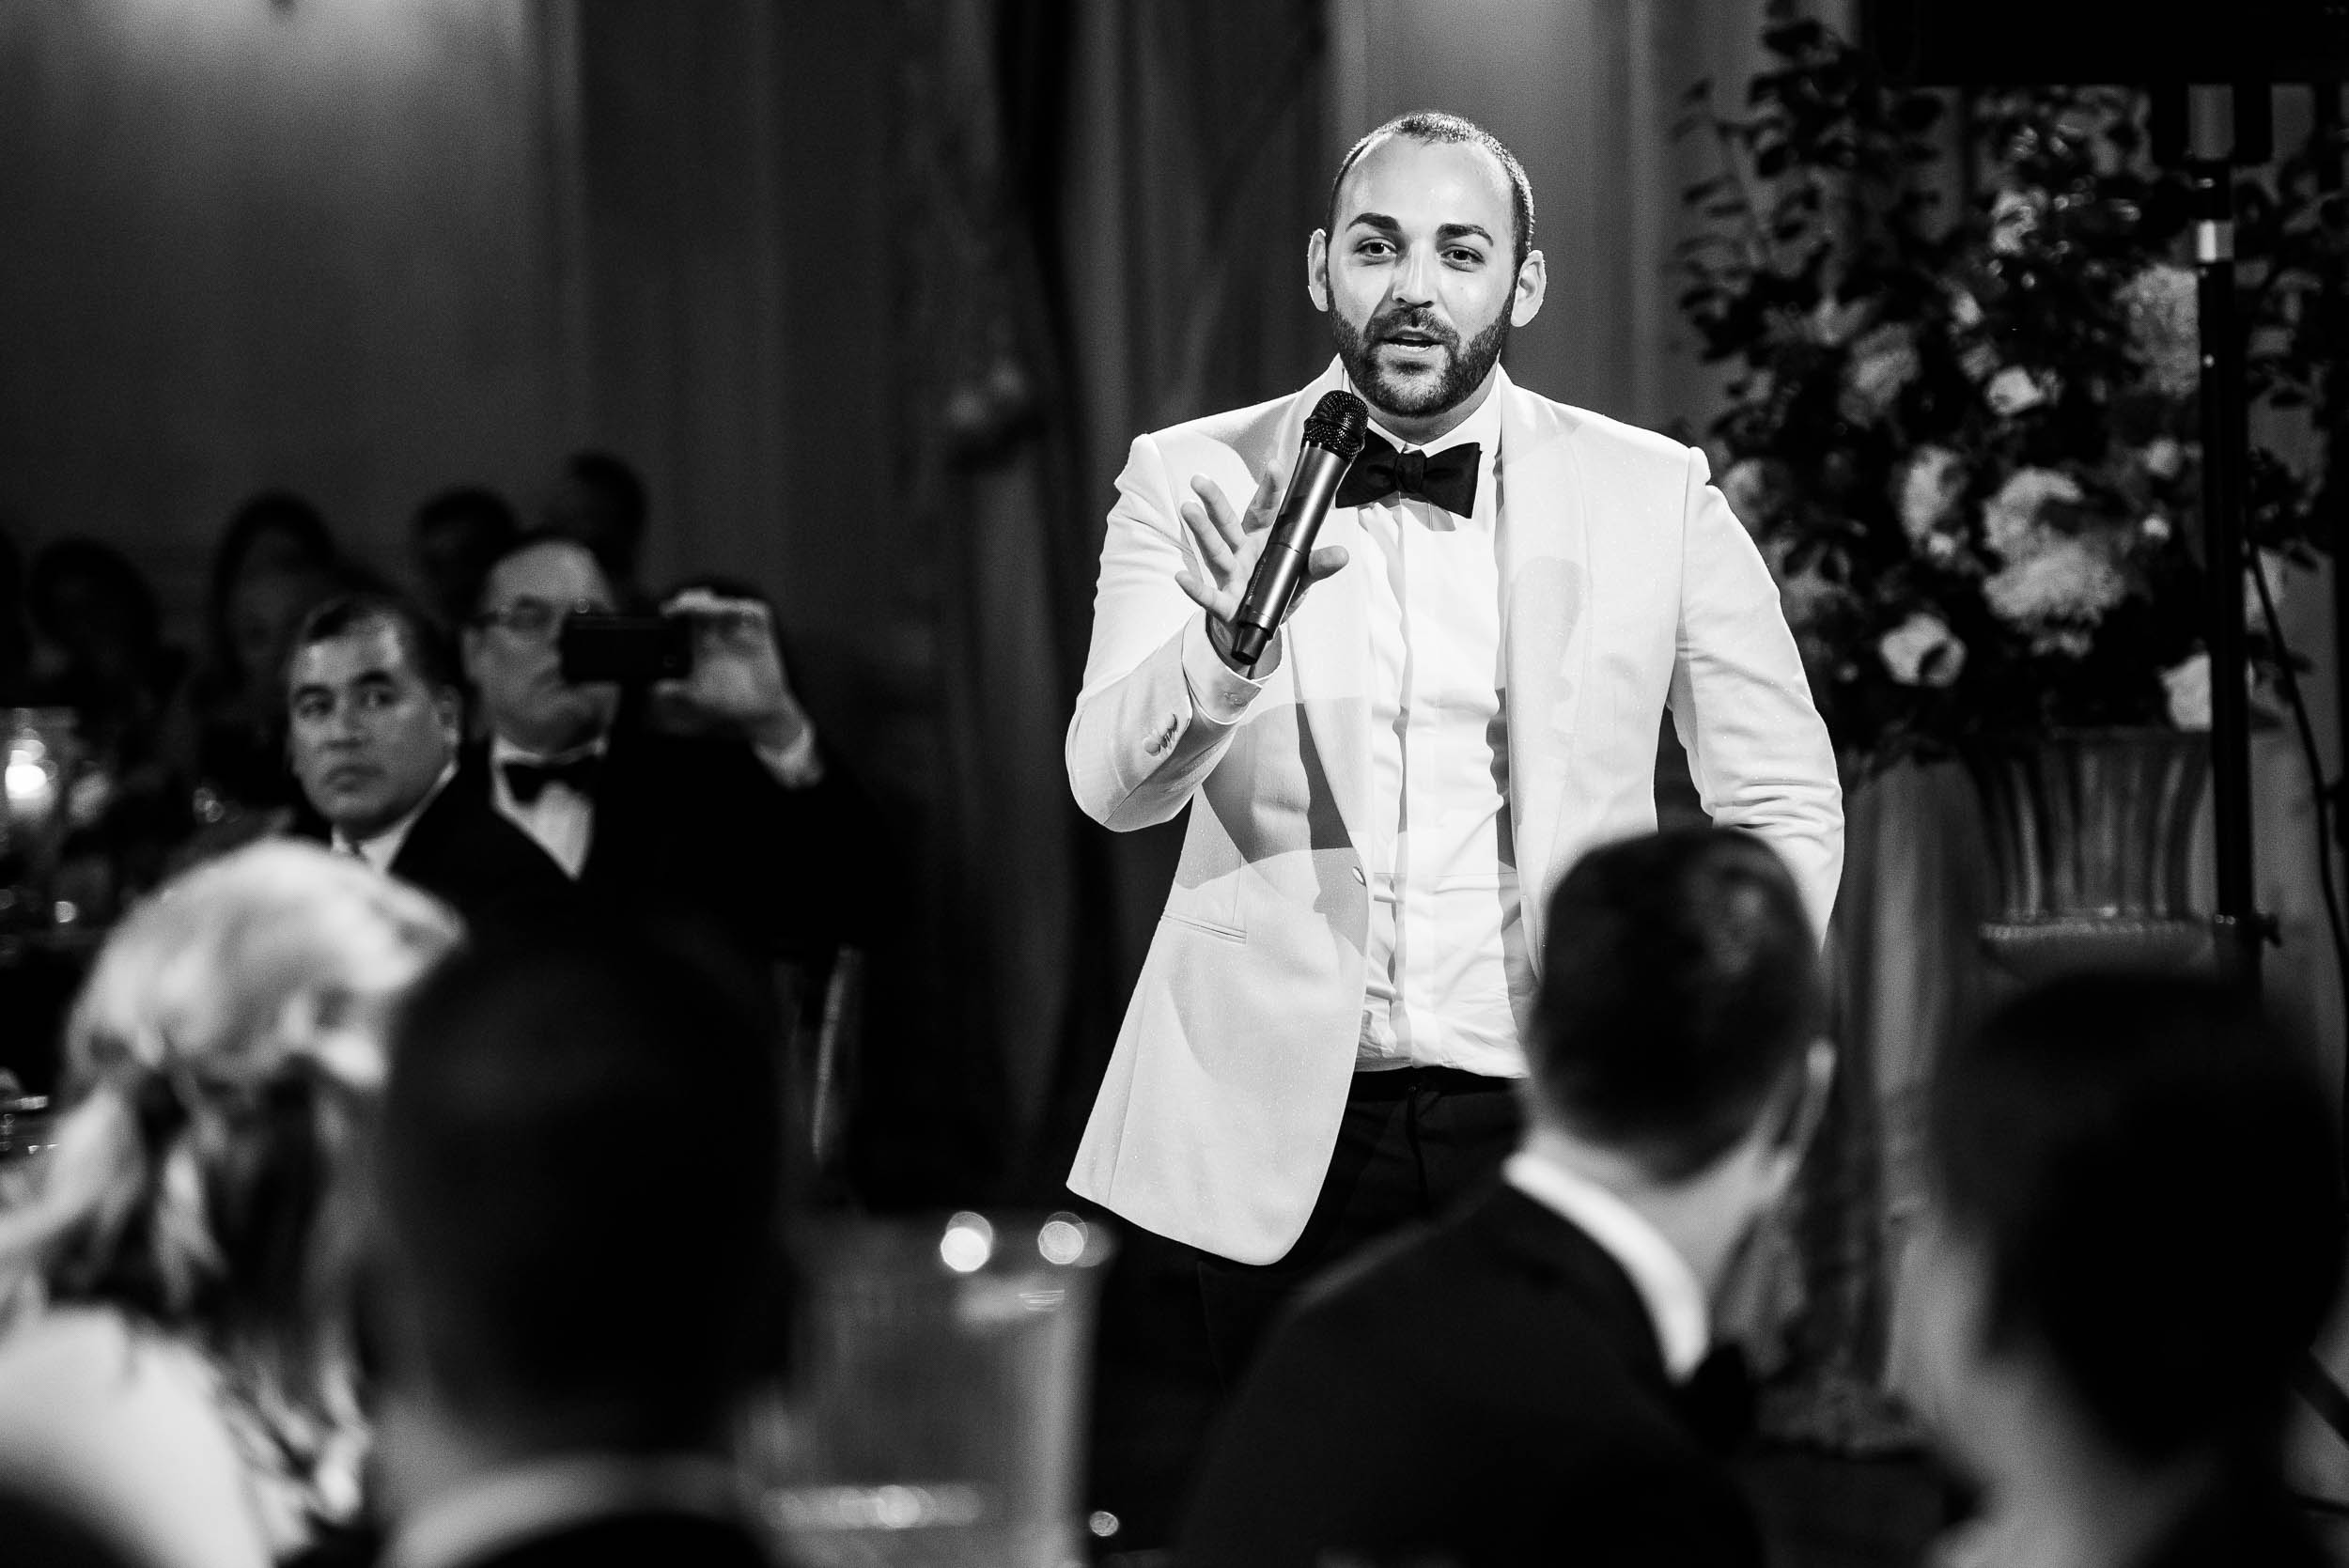 Groom during wedding reception for luxurious fall wedding at the Chicago Symphony Center captured by J. Brown Photography. See more wedding ideas at jbrownphotography.com!